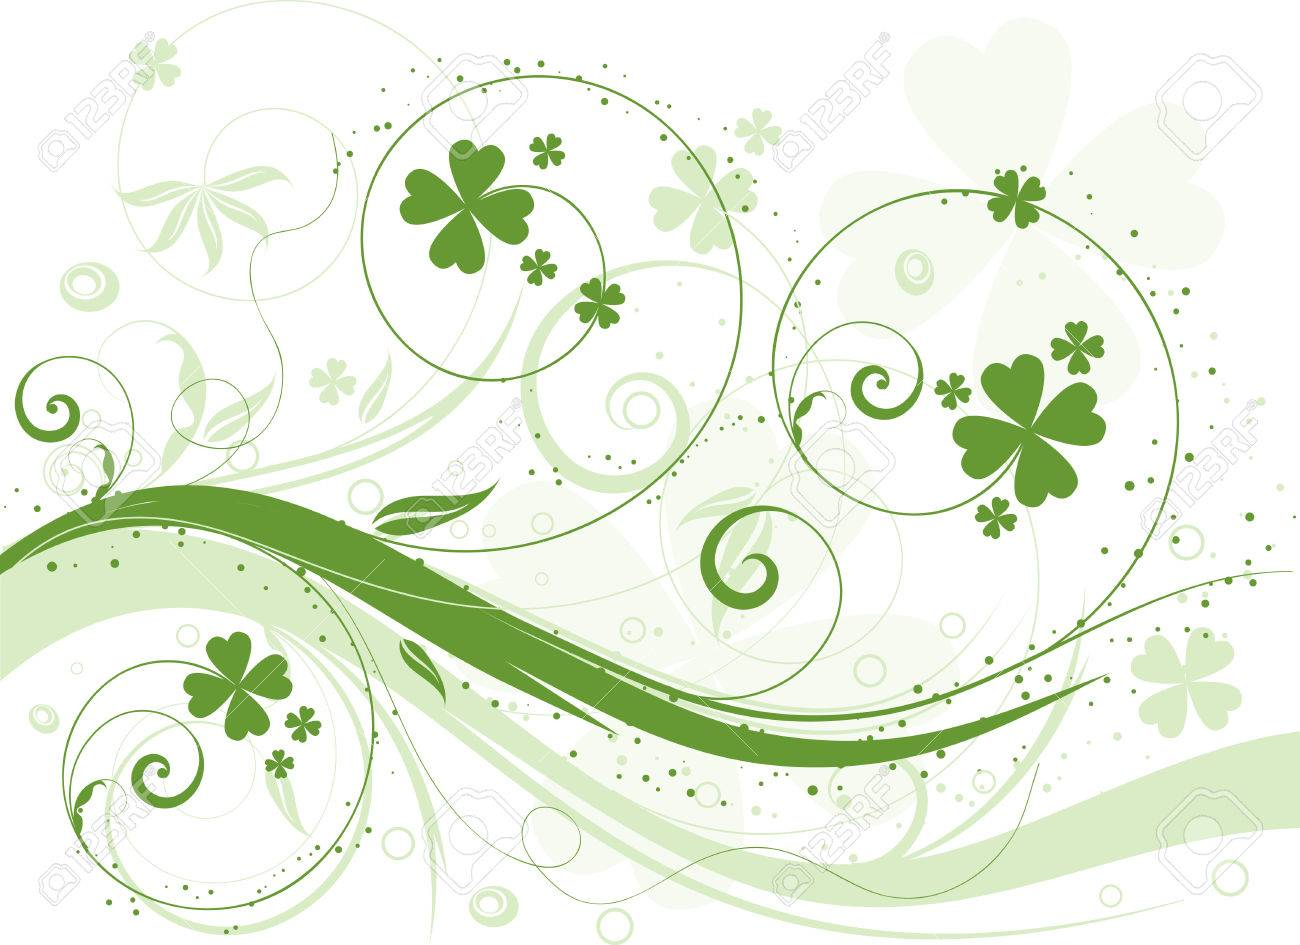 abstract floral design with shamrock royalty free cliparts